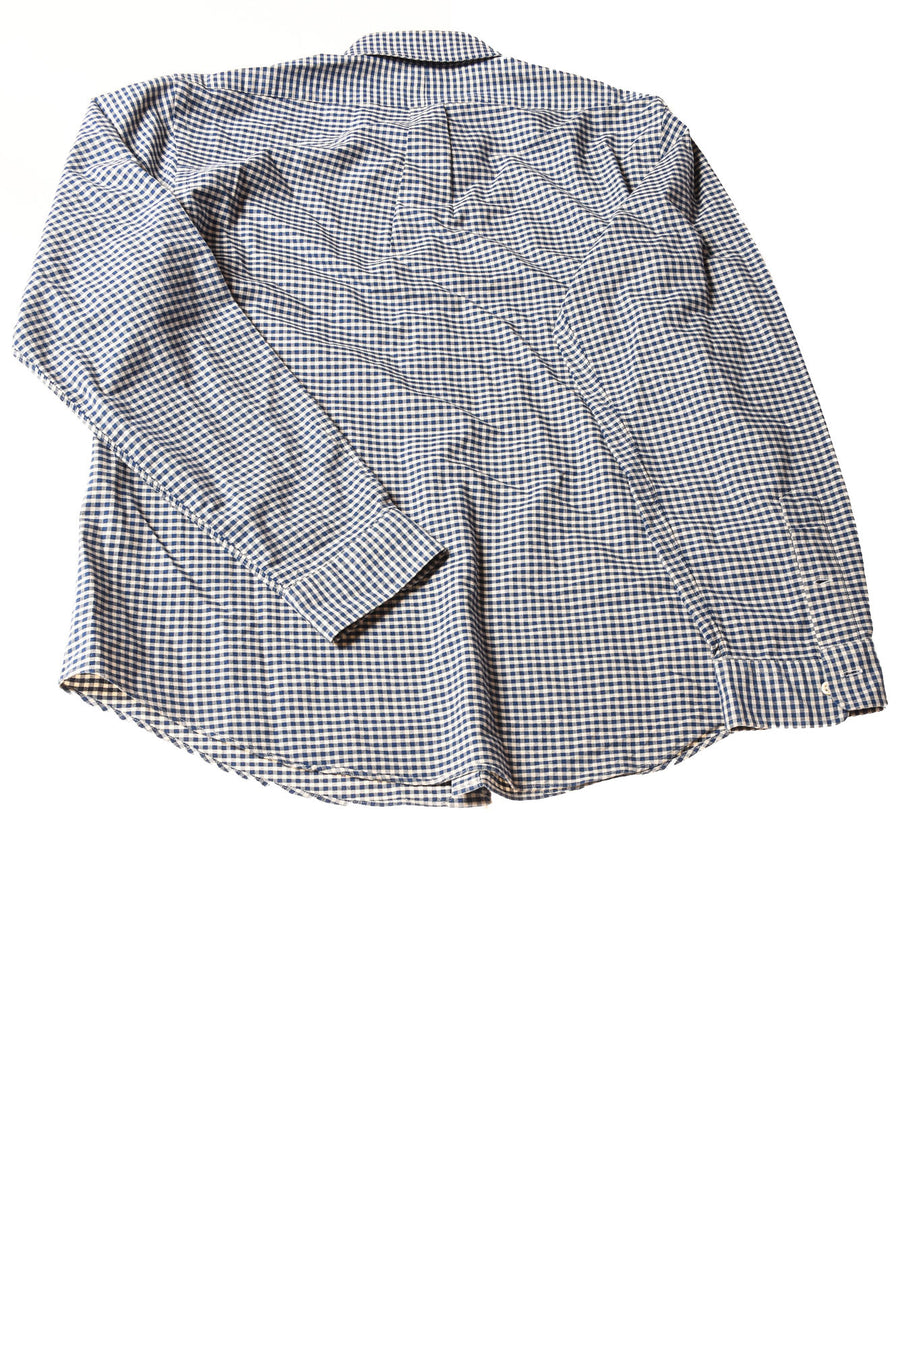 USED Ralph Lauren Men's Shirt X-Large Blue & White / Plaid